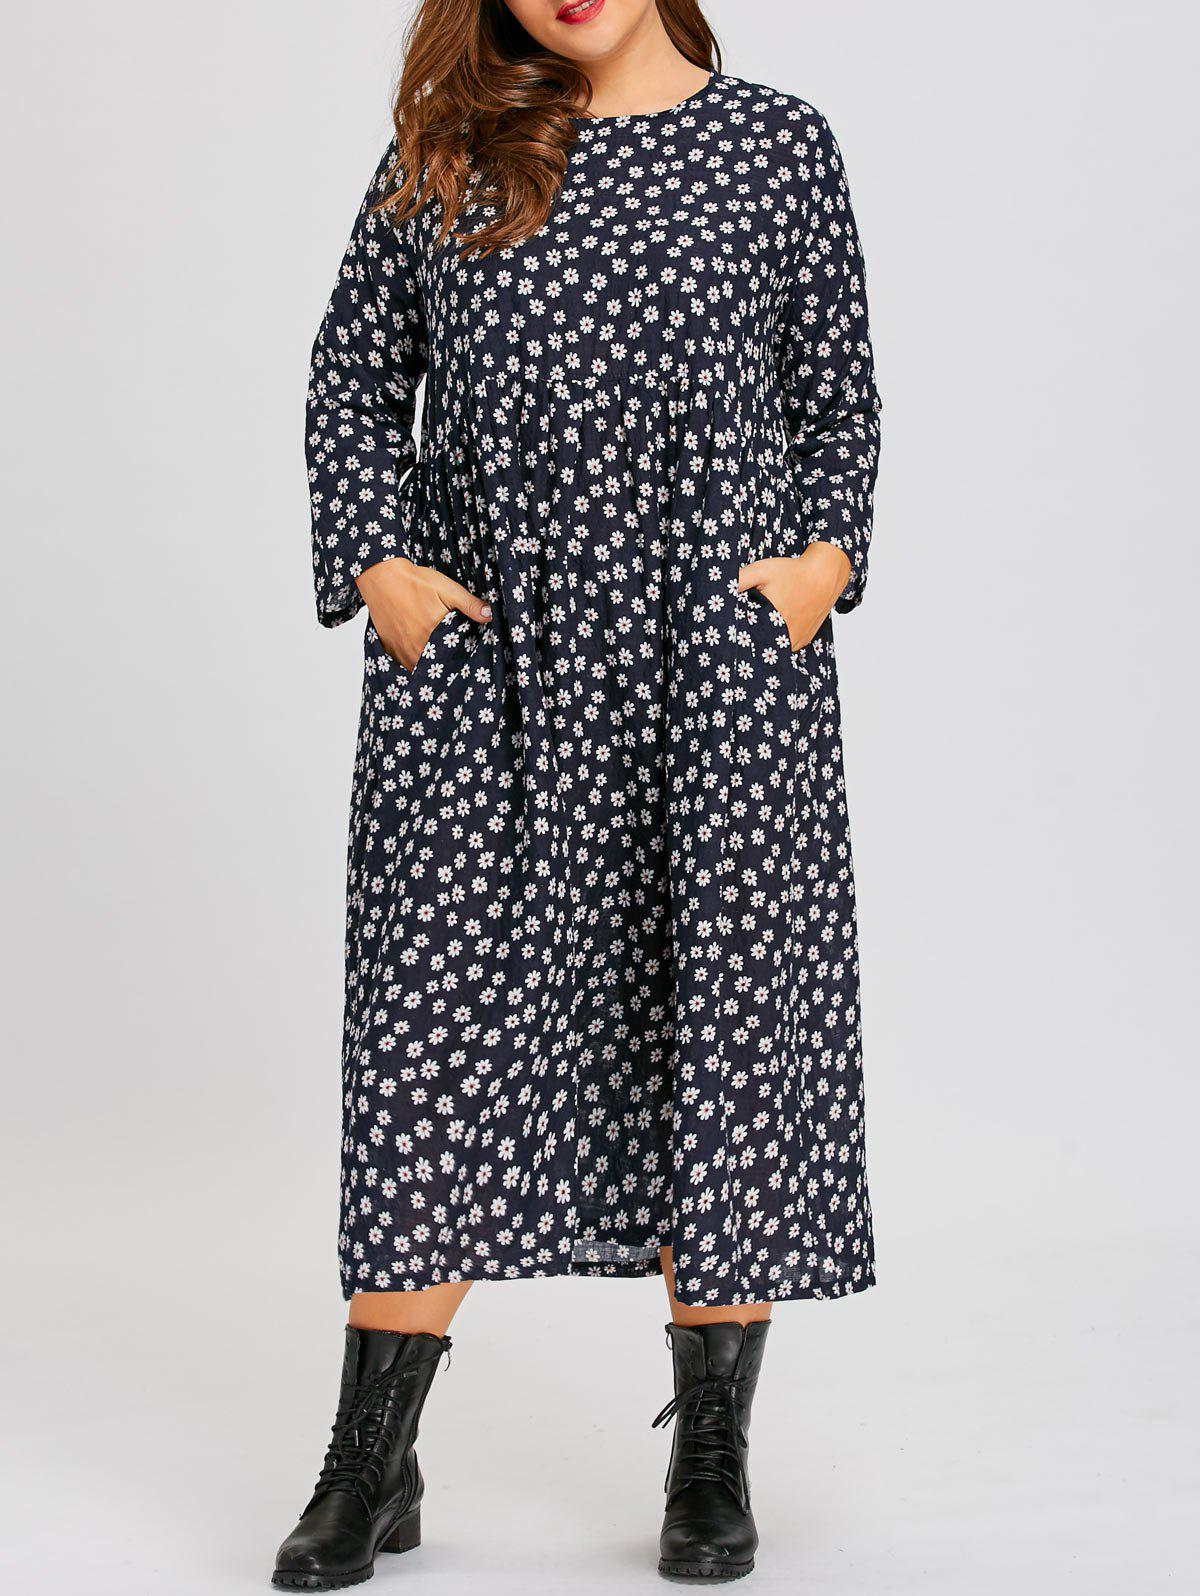 Plus Size Tiny Floral Country Dress with Sleeves